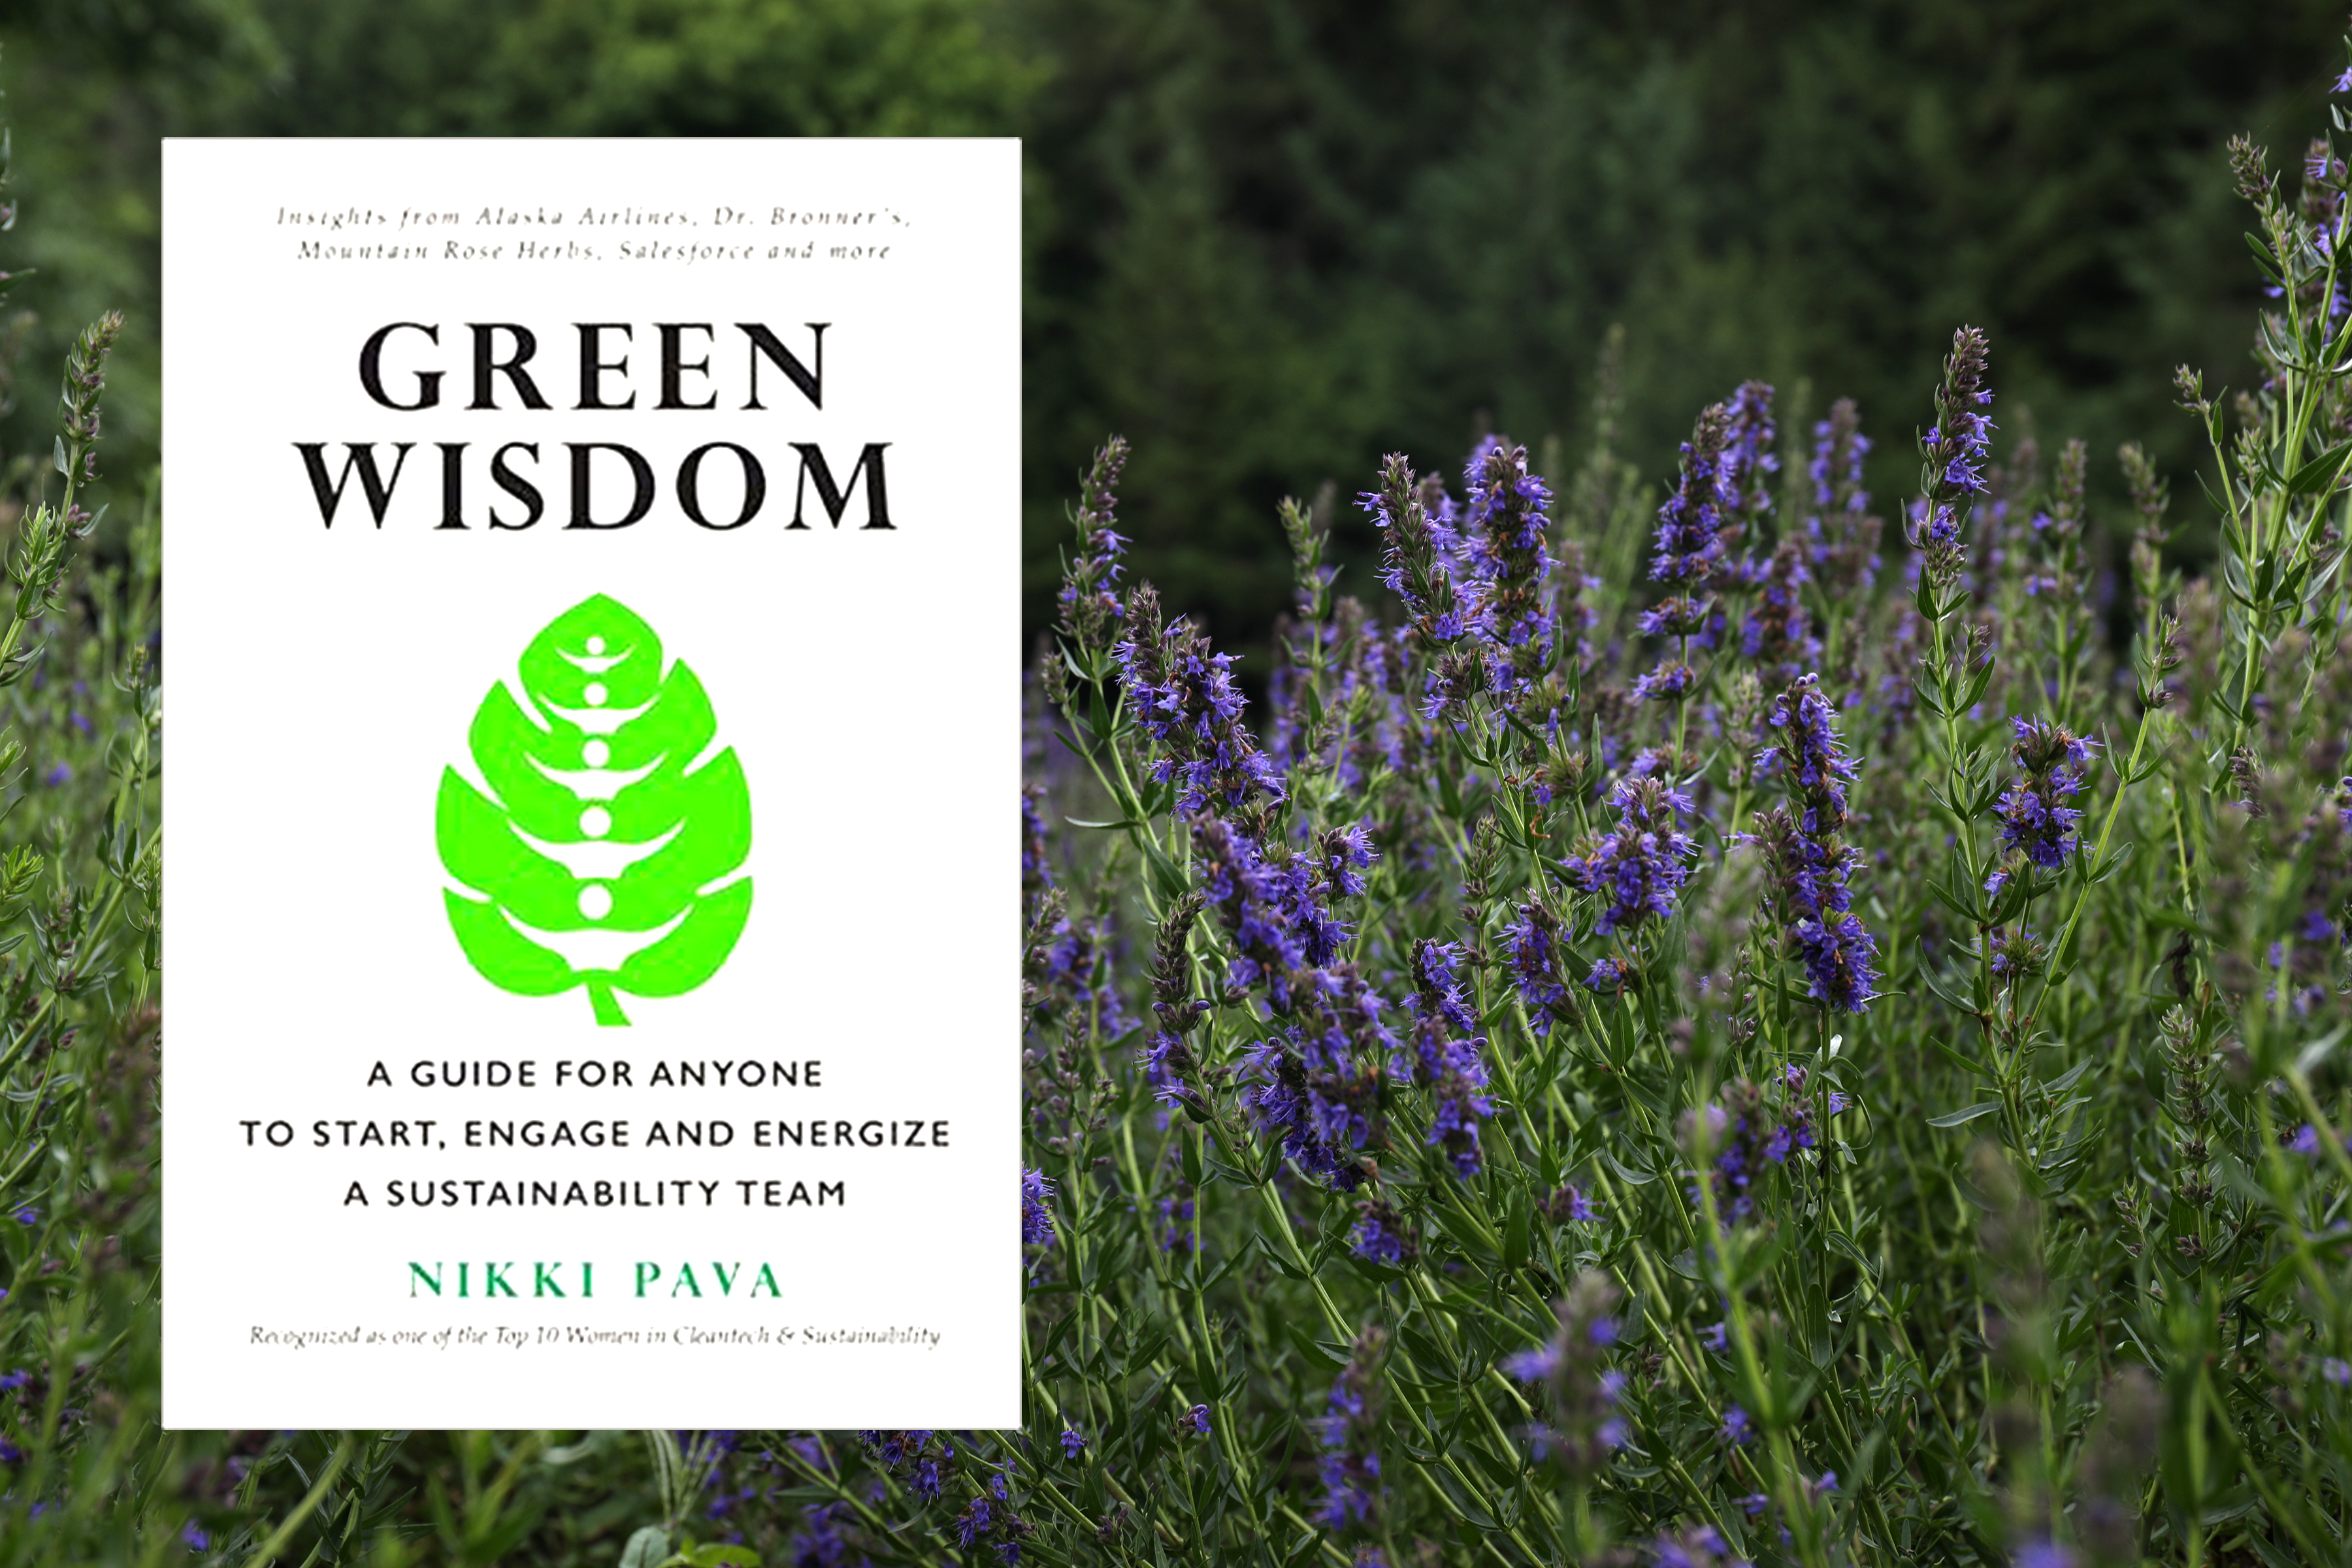 Cover of Green Wisdom, a book by Nikki Pava about starting a sustainability team in the workplace.